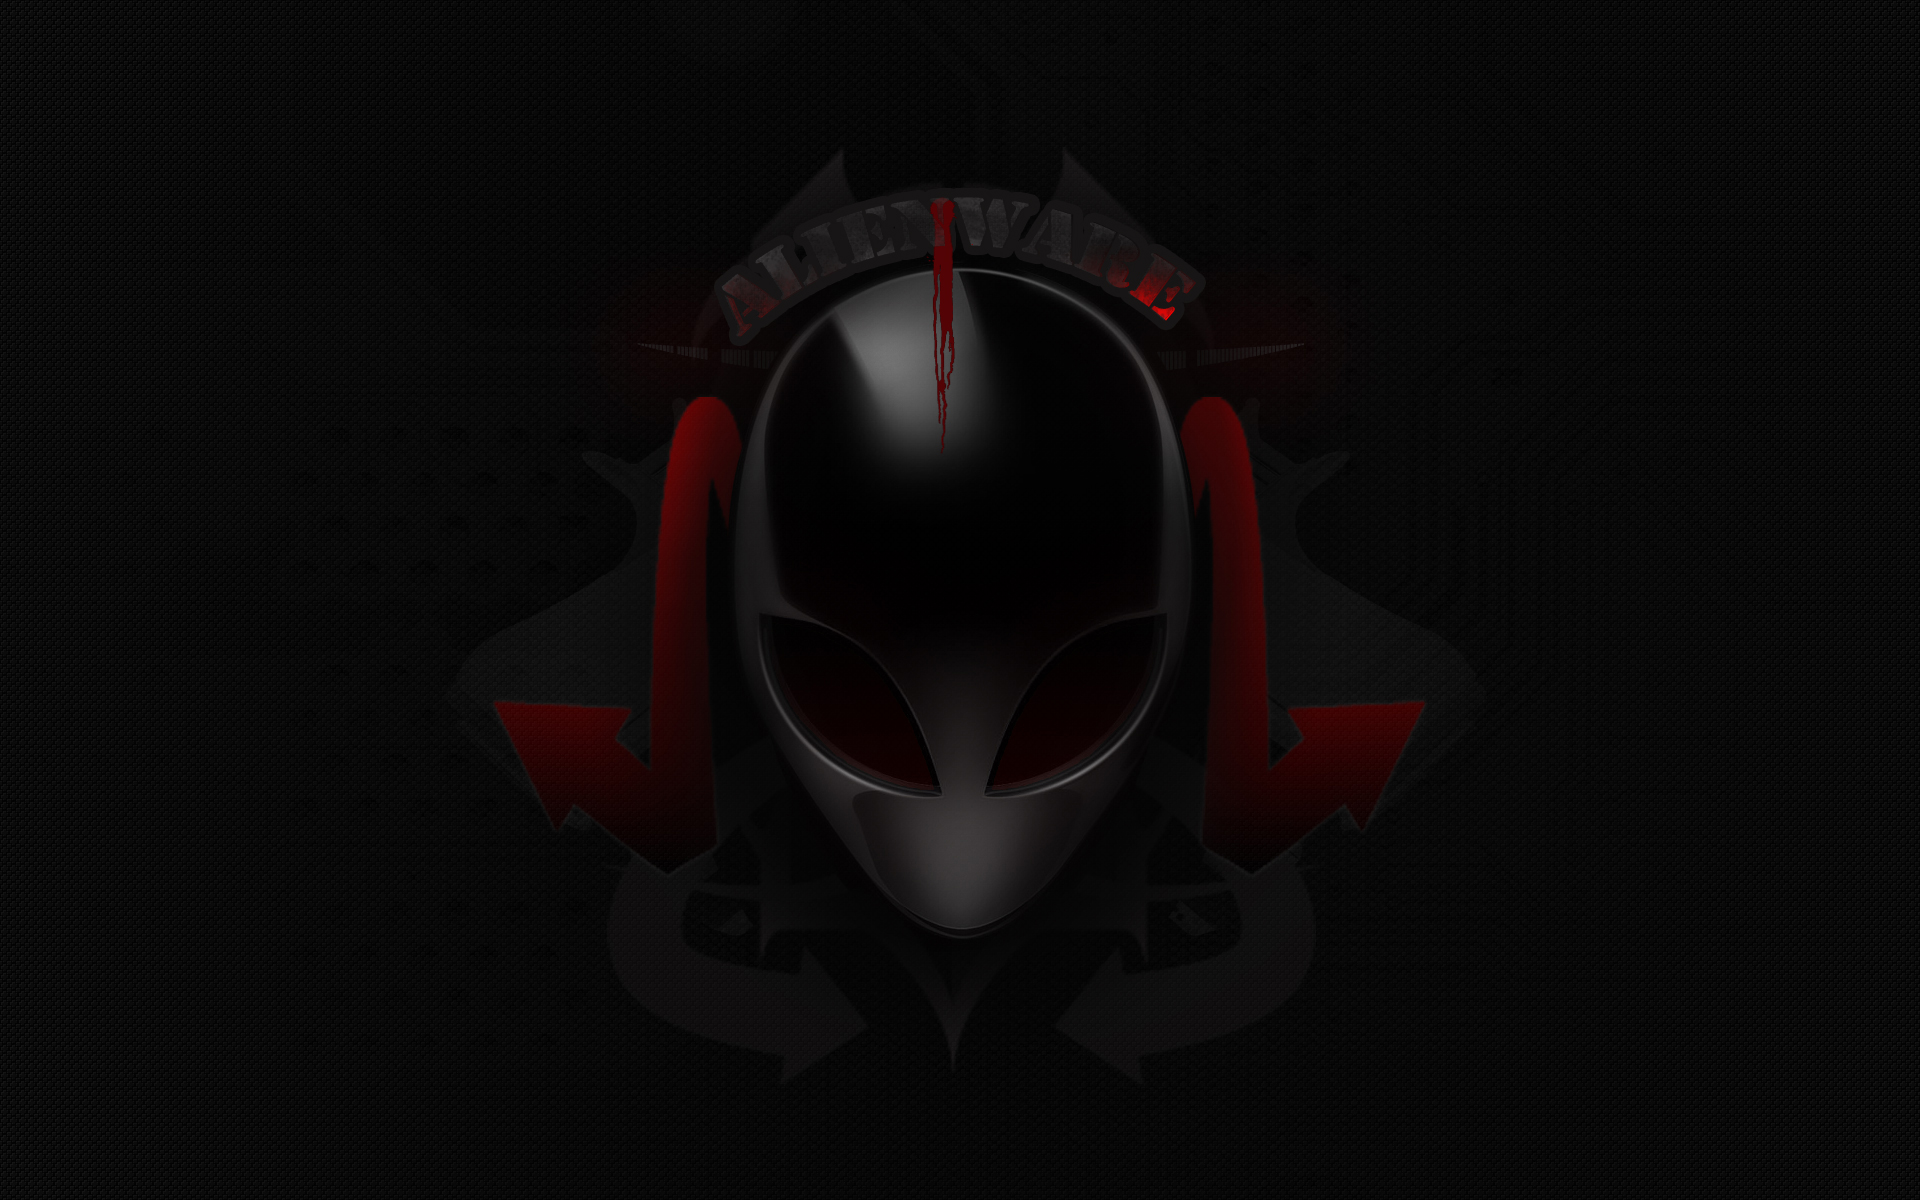 alienware wallpapers all colors - page 2